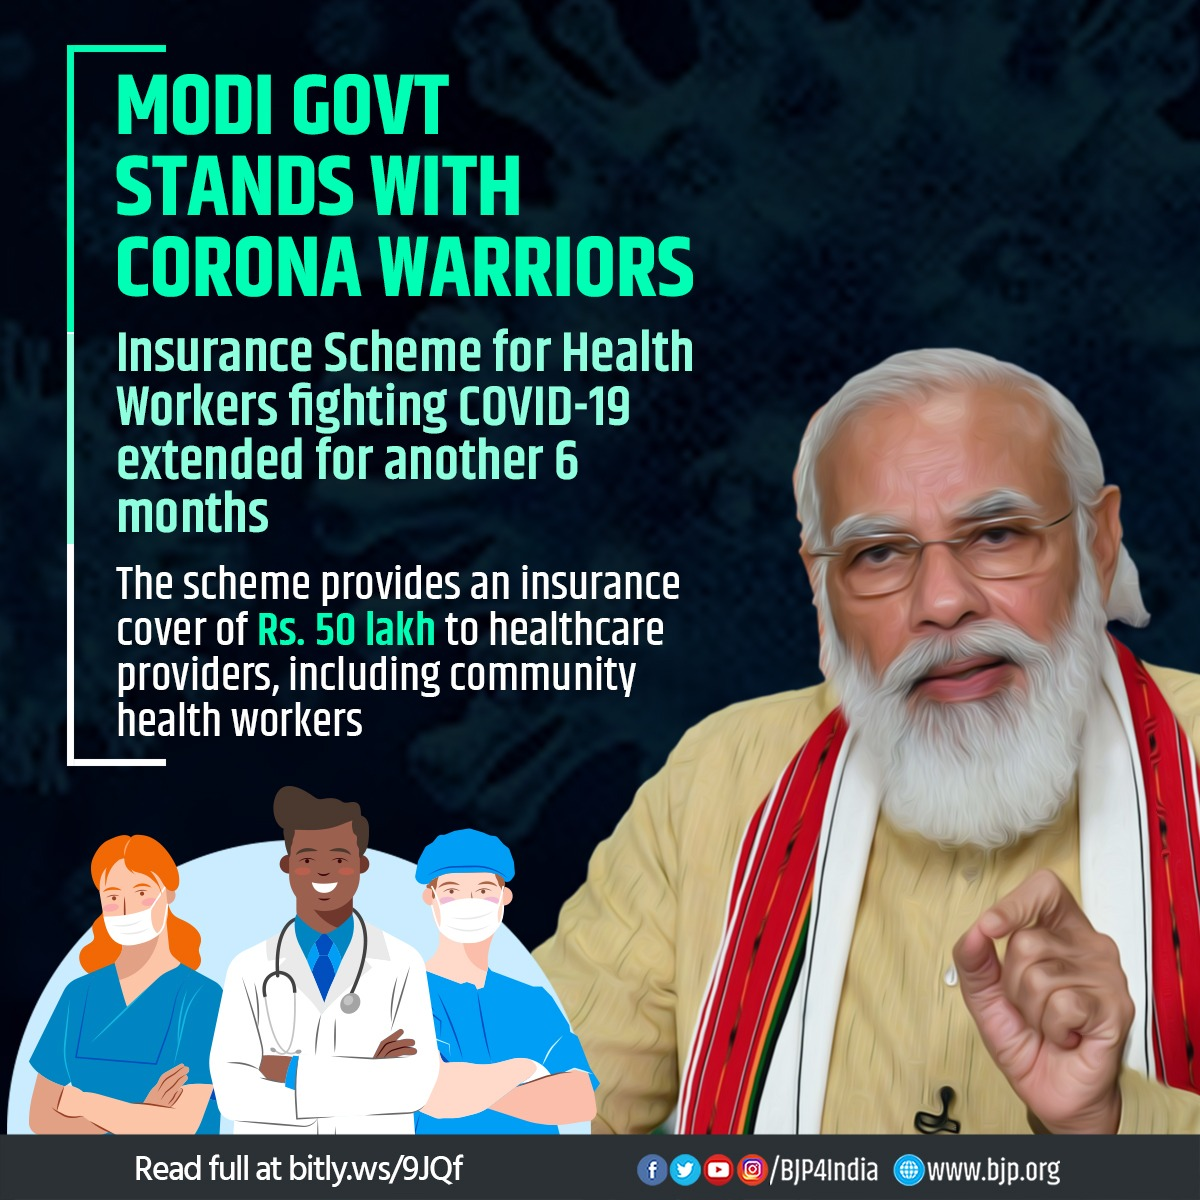 Modi government stands with Corona Warriors. Insurance scheme with a coverage of Rs 50 lakh for healthcare workers fighting COVID-19 has now been extended for another 6 months w.e.f. 25th Sept, 2020. Announced on 30 March, this is the second extension. #IndiaFightsCorona